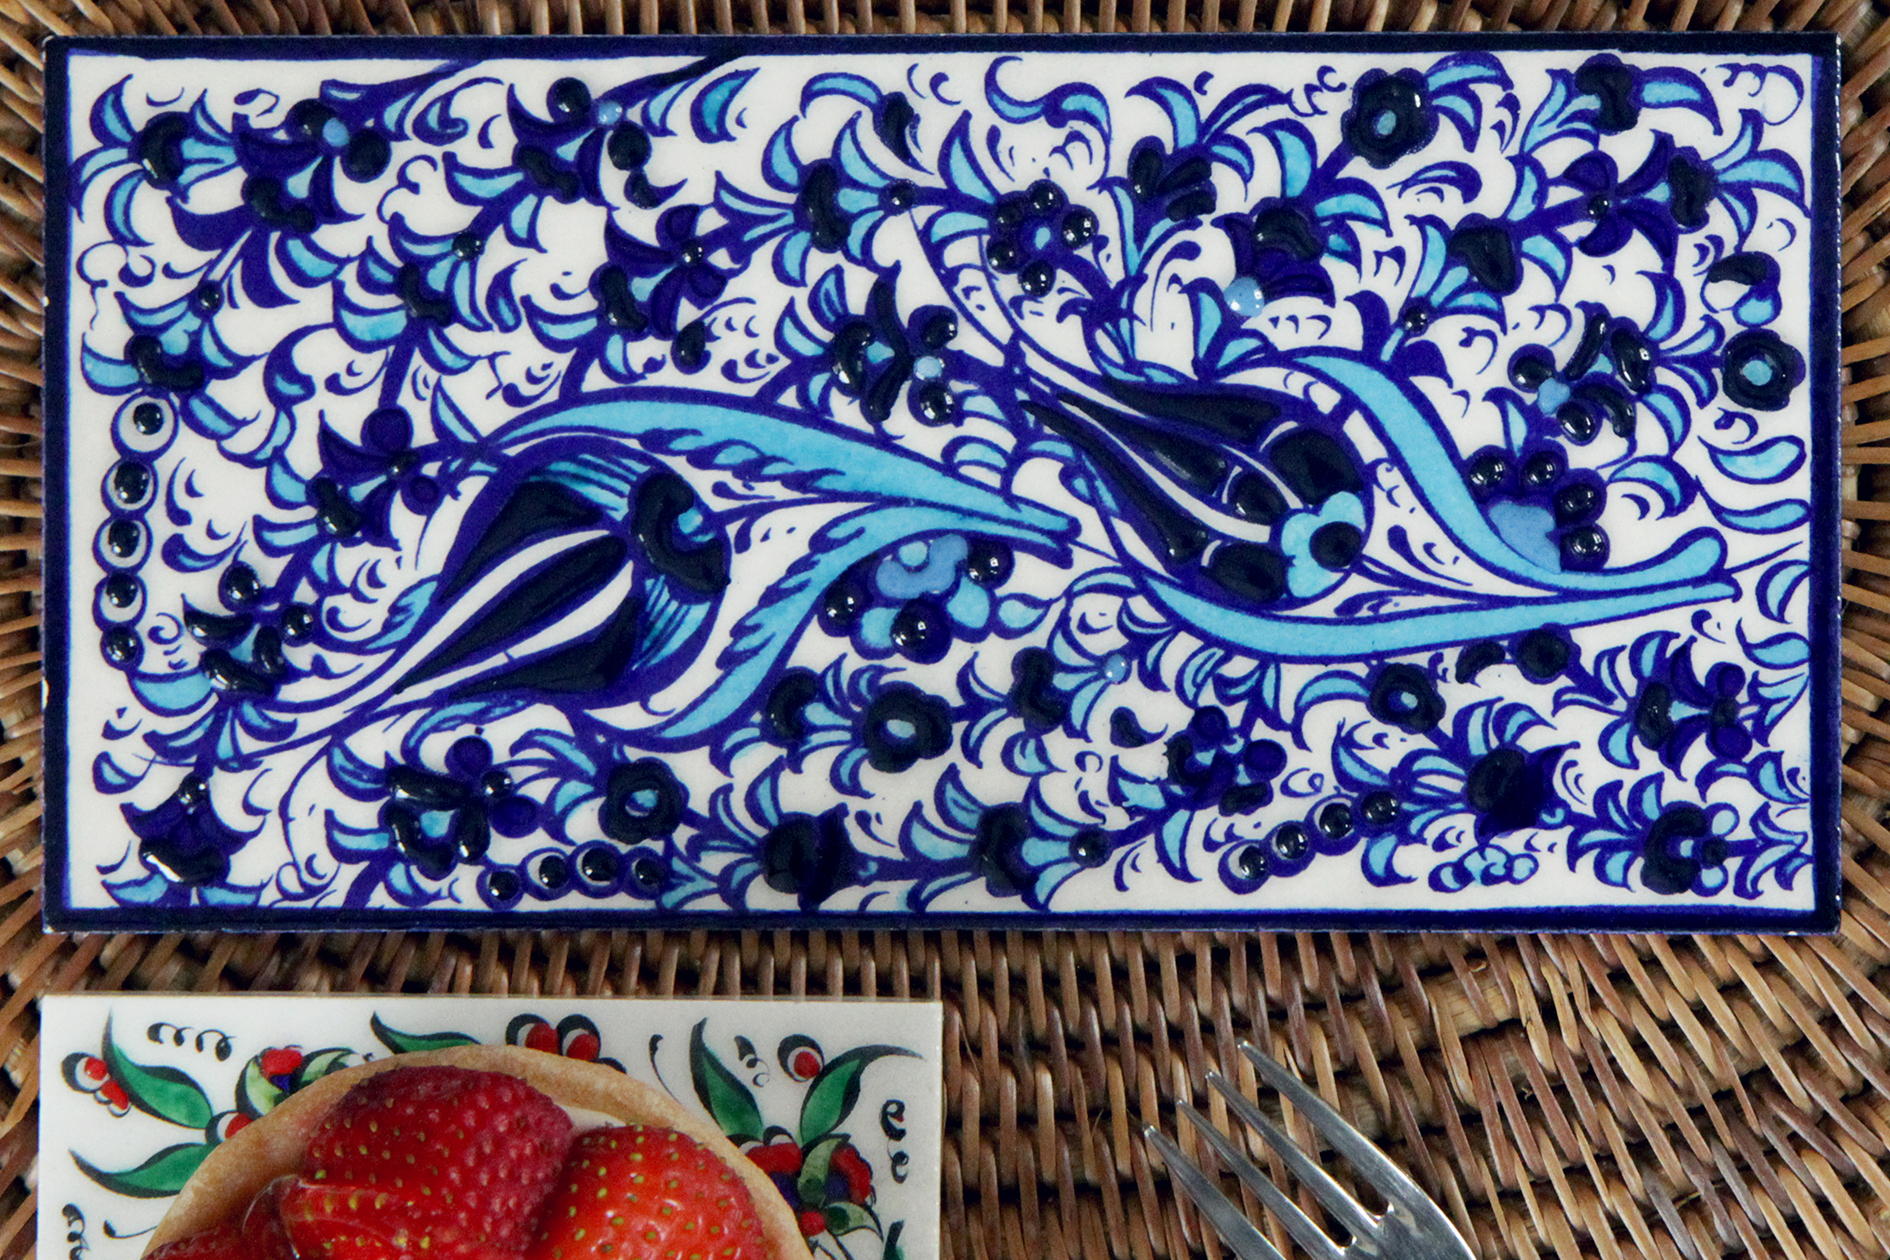 2006-hand-painted-iznik-tile-above